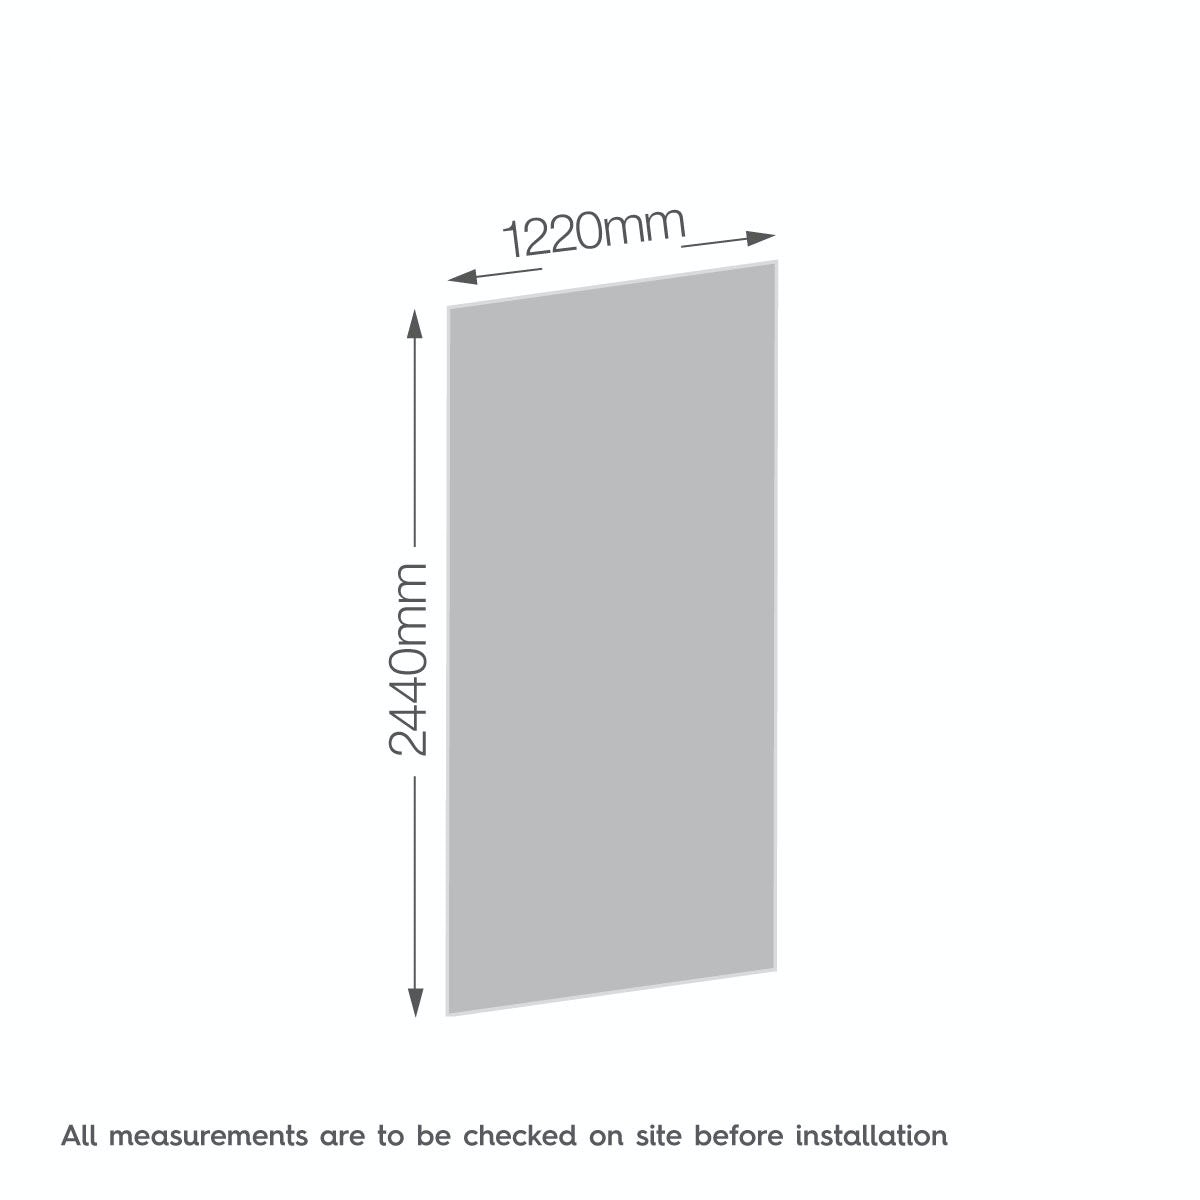 Dimensions for Zenolite plus air acrylic shower wall panel 2440 x 1220